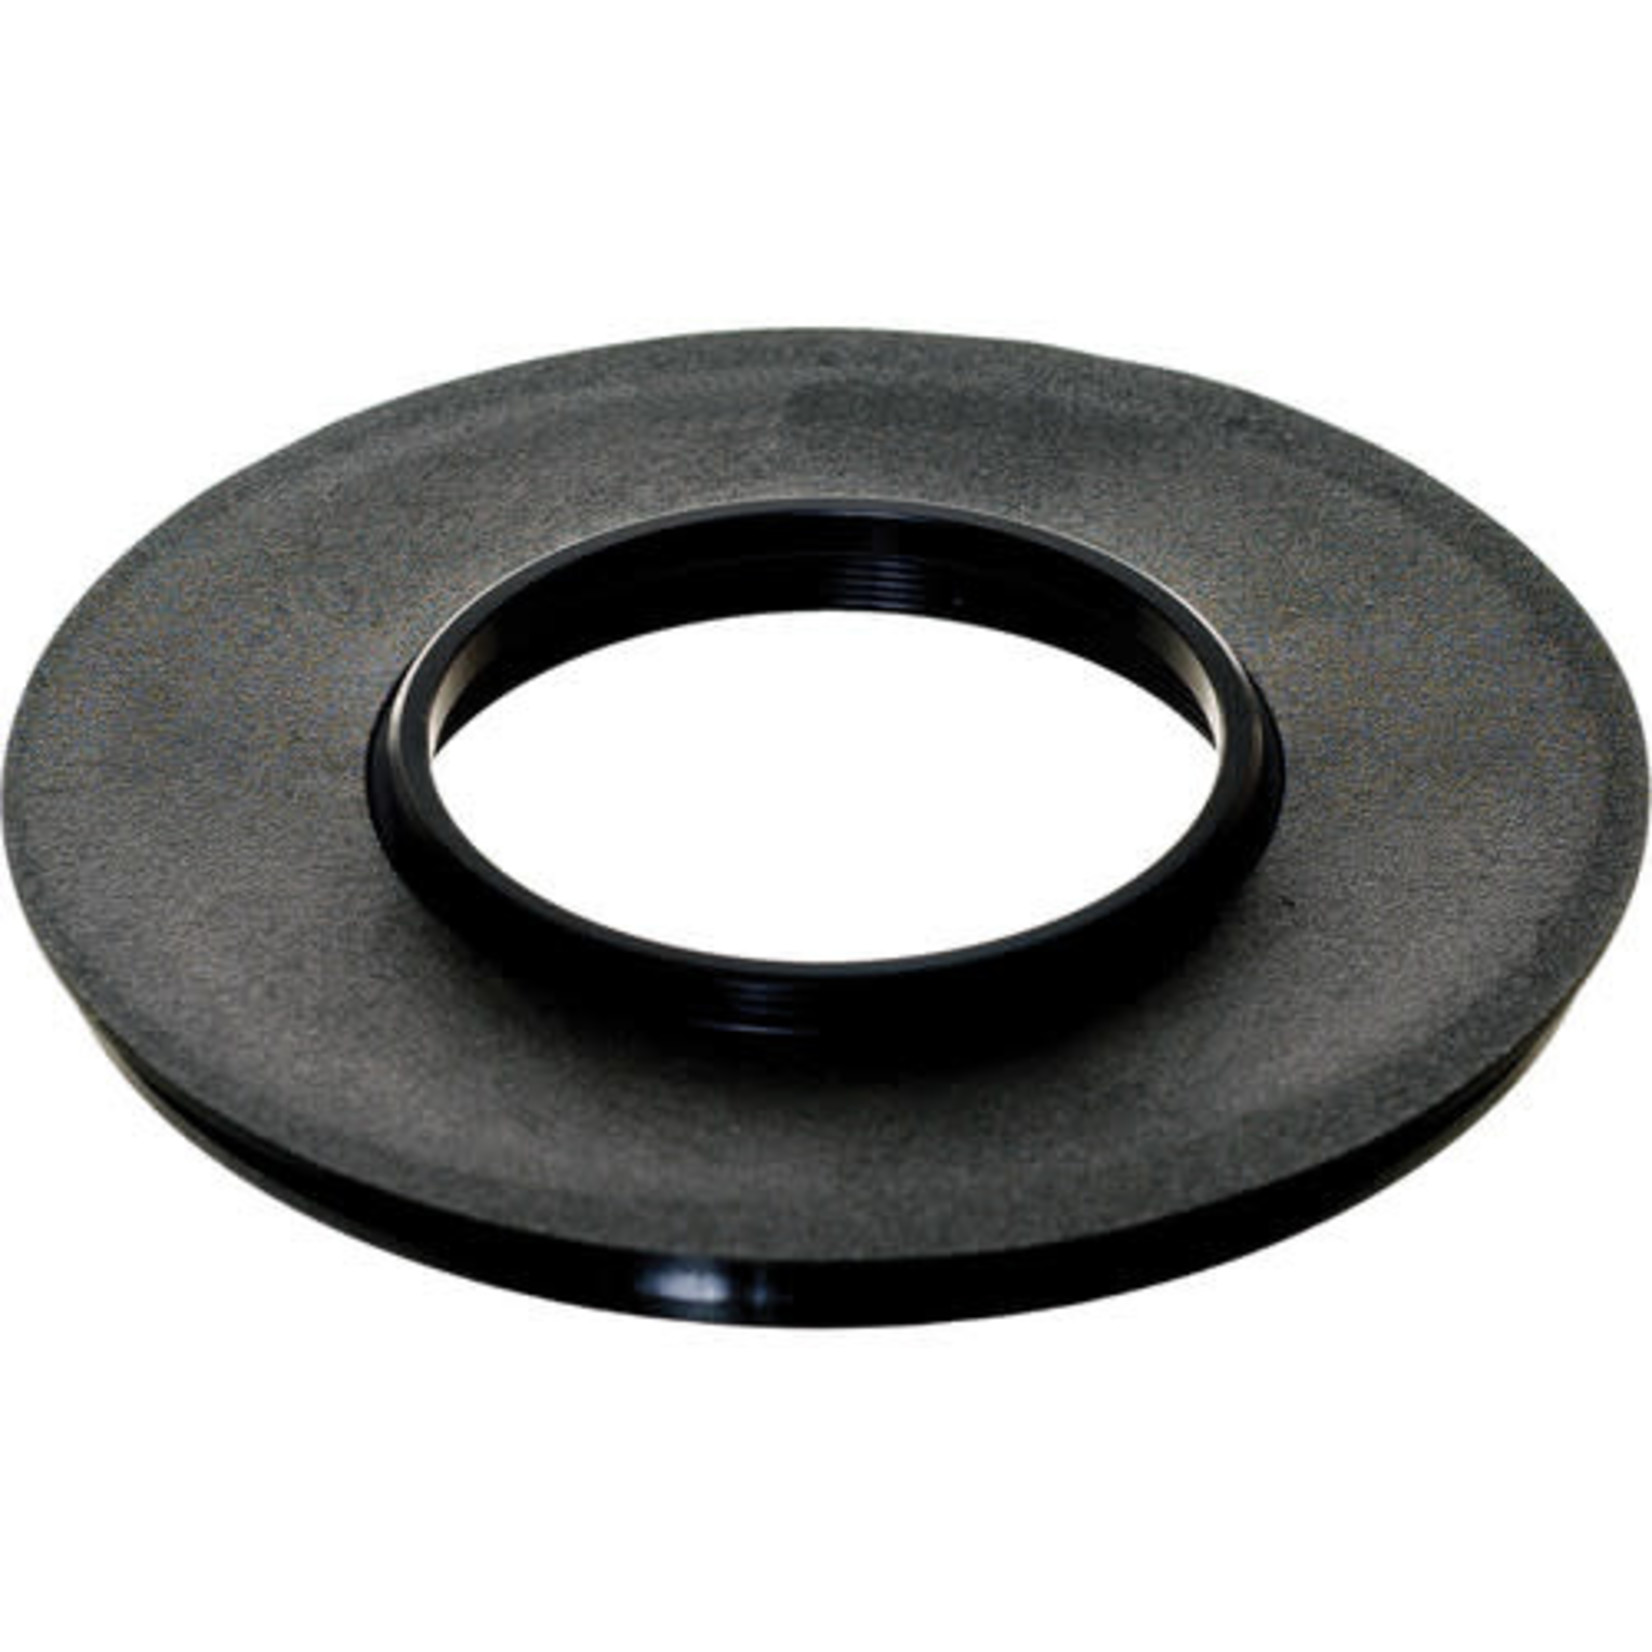 Lee LEE Filters 49mm Adapter Ring for Foundation Kit